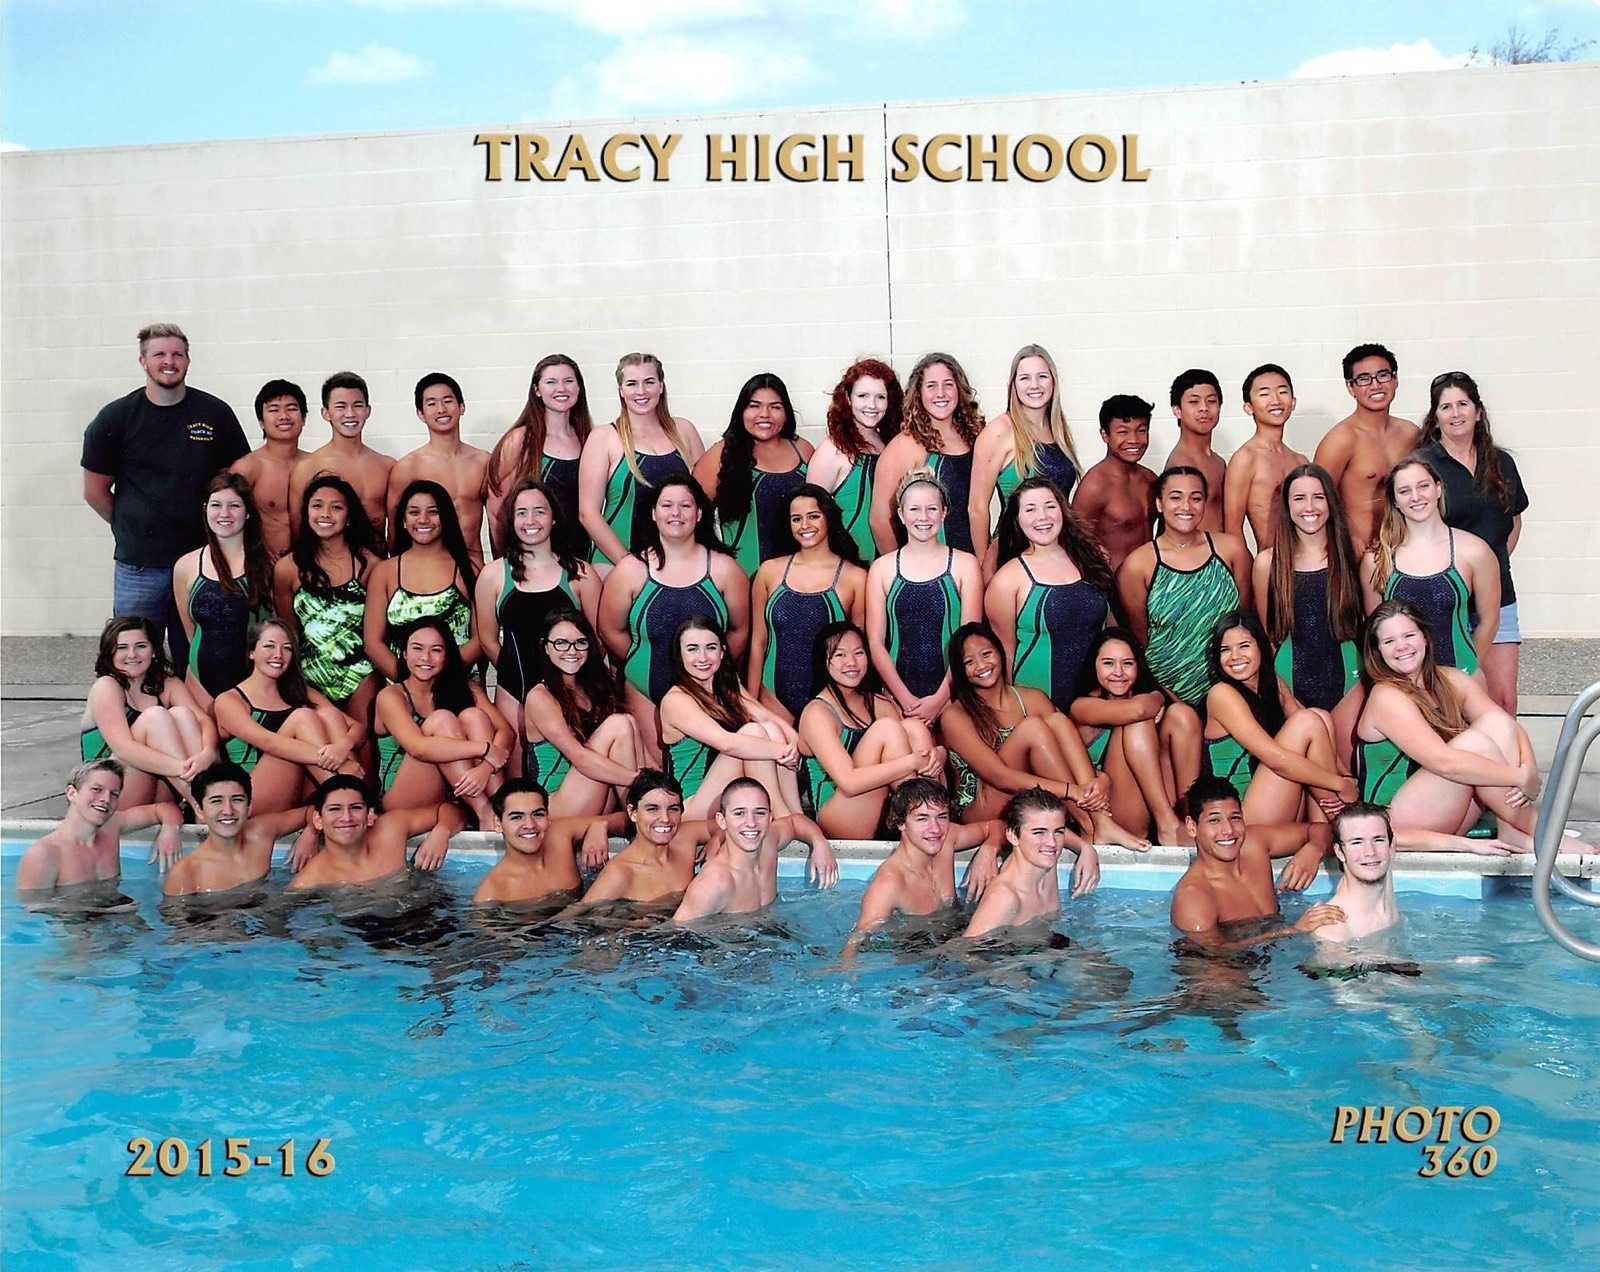 Tracy High swim team poses for a group team picture.